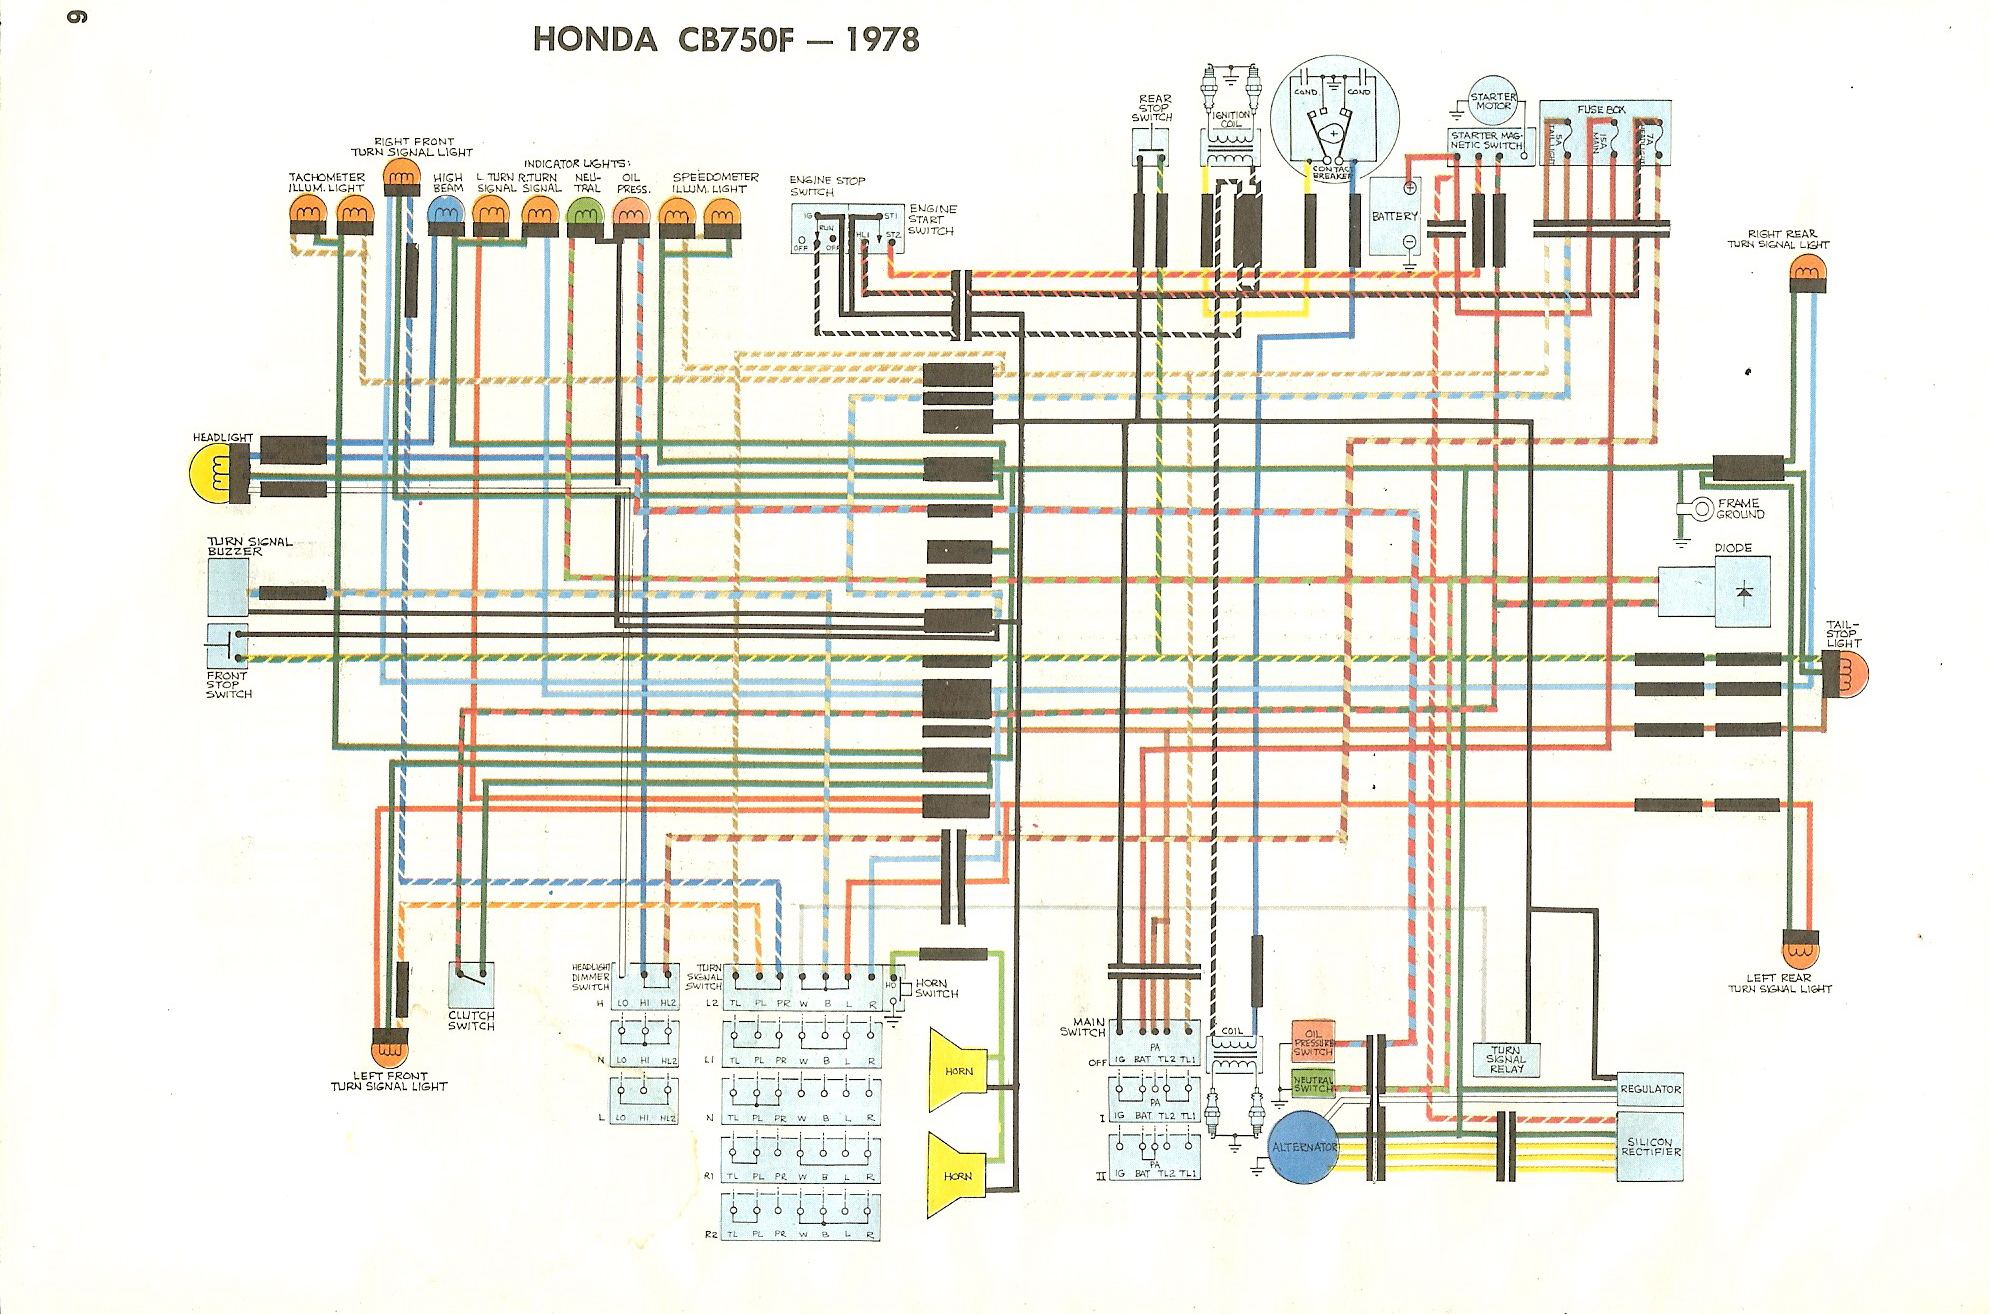 1977 Honda Cb750 Wiring Diagram  Honda  Wiring Diagram Images